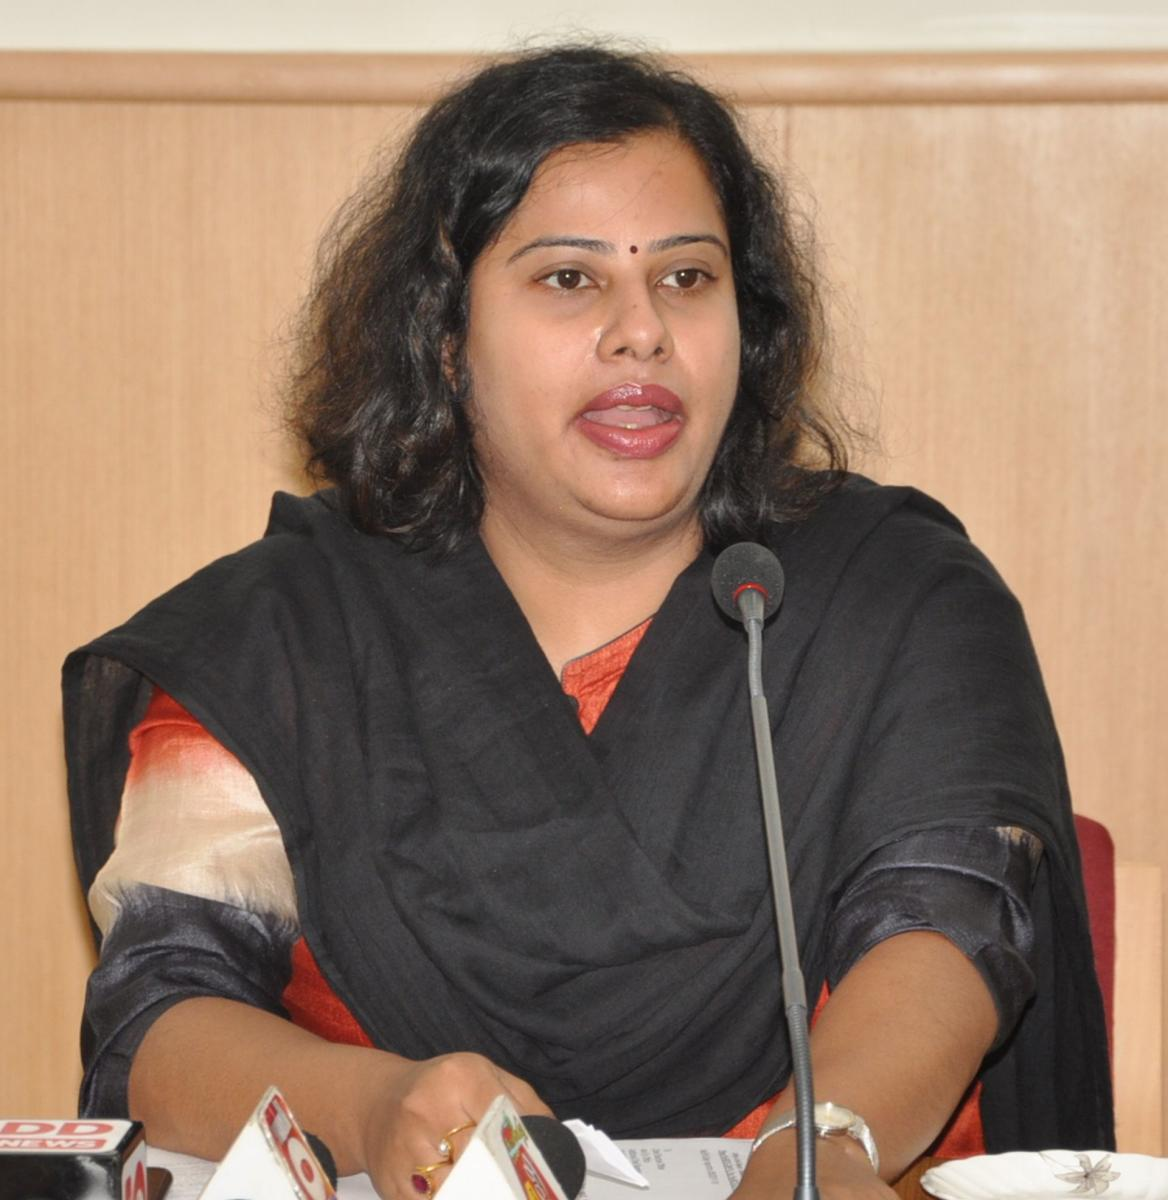 Deputy Commissioner N Manjushri, who is also the election officer, has lodged a complaint at Mandya West police station about receiving a threat call from an unidentified person on her mobile phone, here on Thursday.